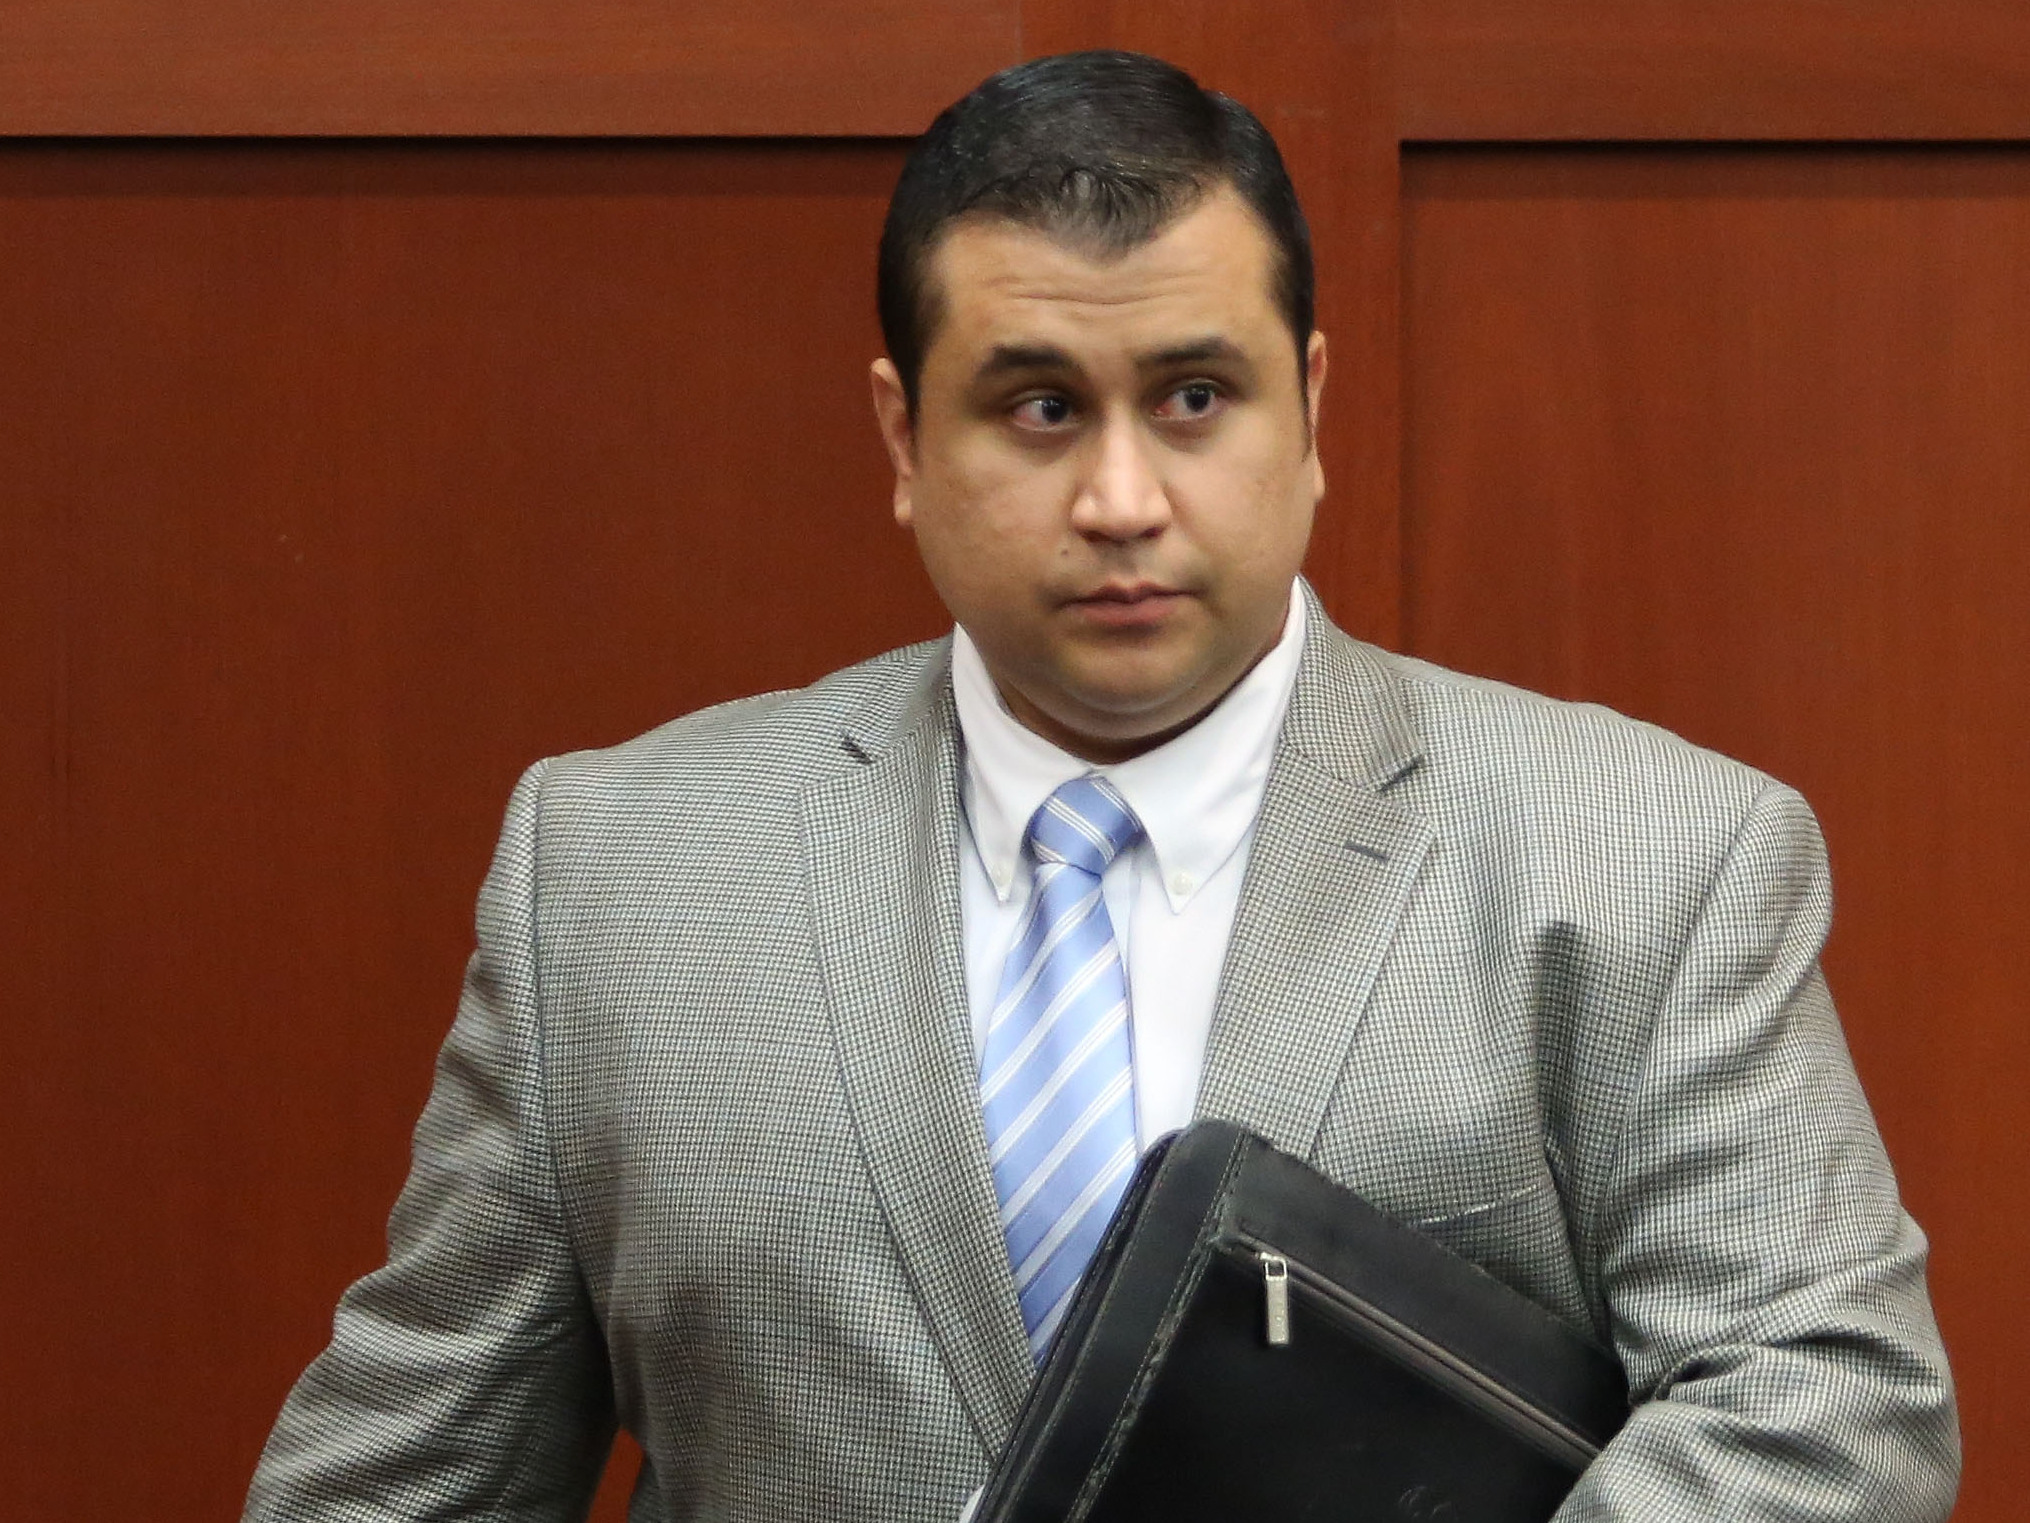 READ: Instructions For The Jury In Trial Of George Zimmerman